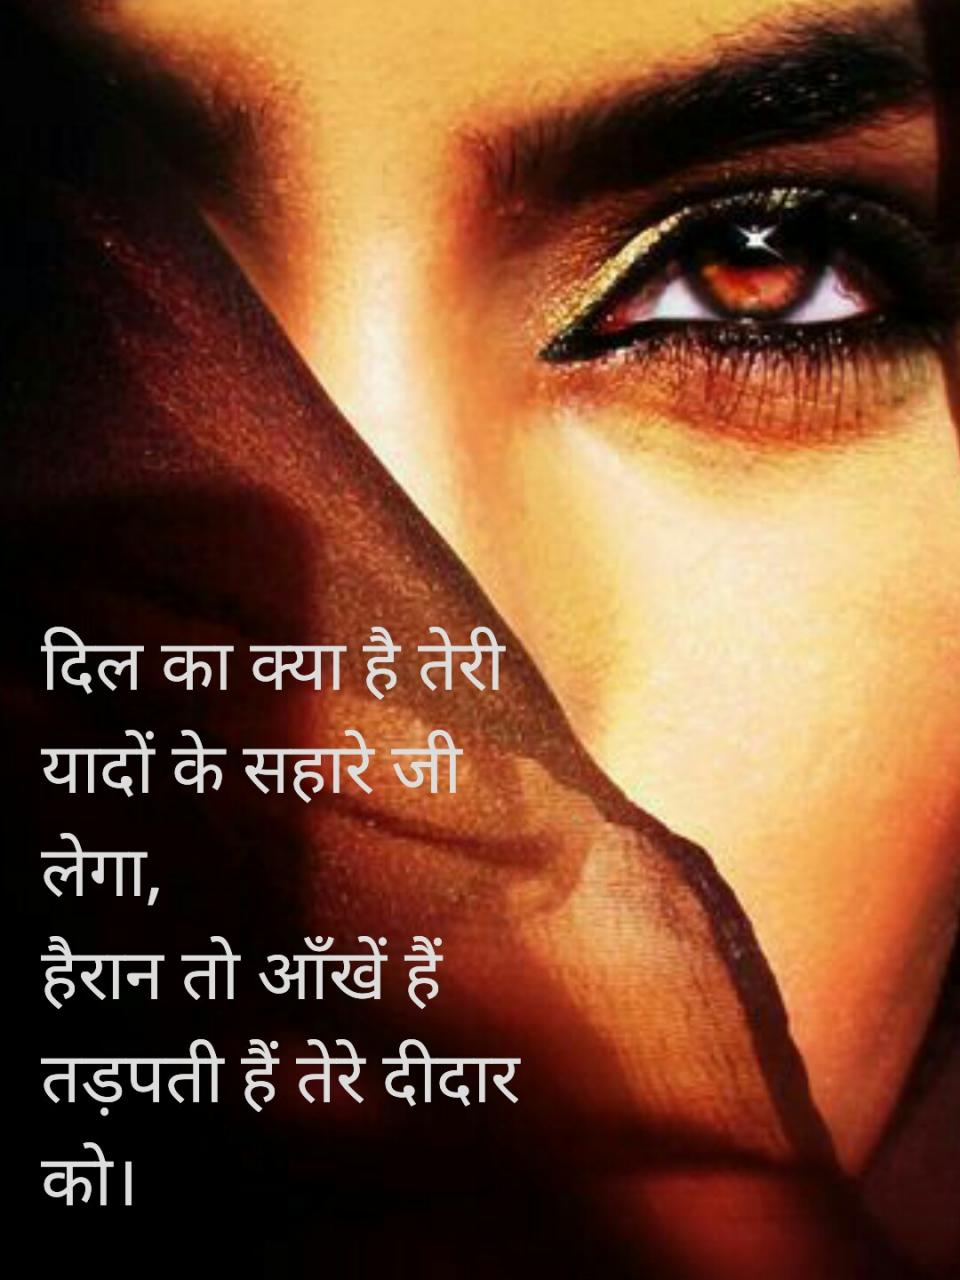 Eyes With Hindi Love Quote Hindi Shayari Heart Love Memories Hindi Quotes